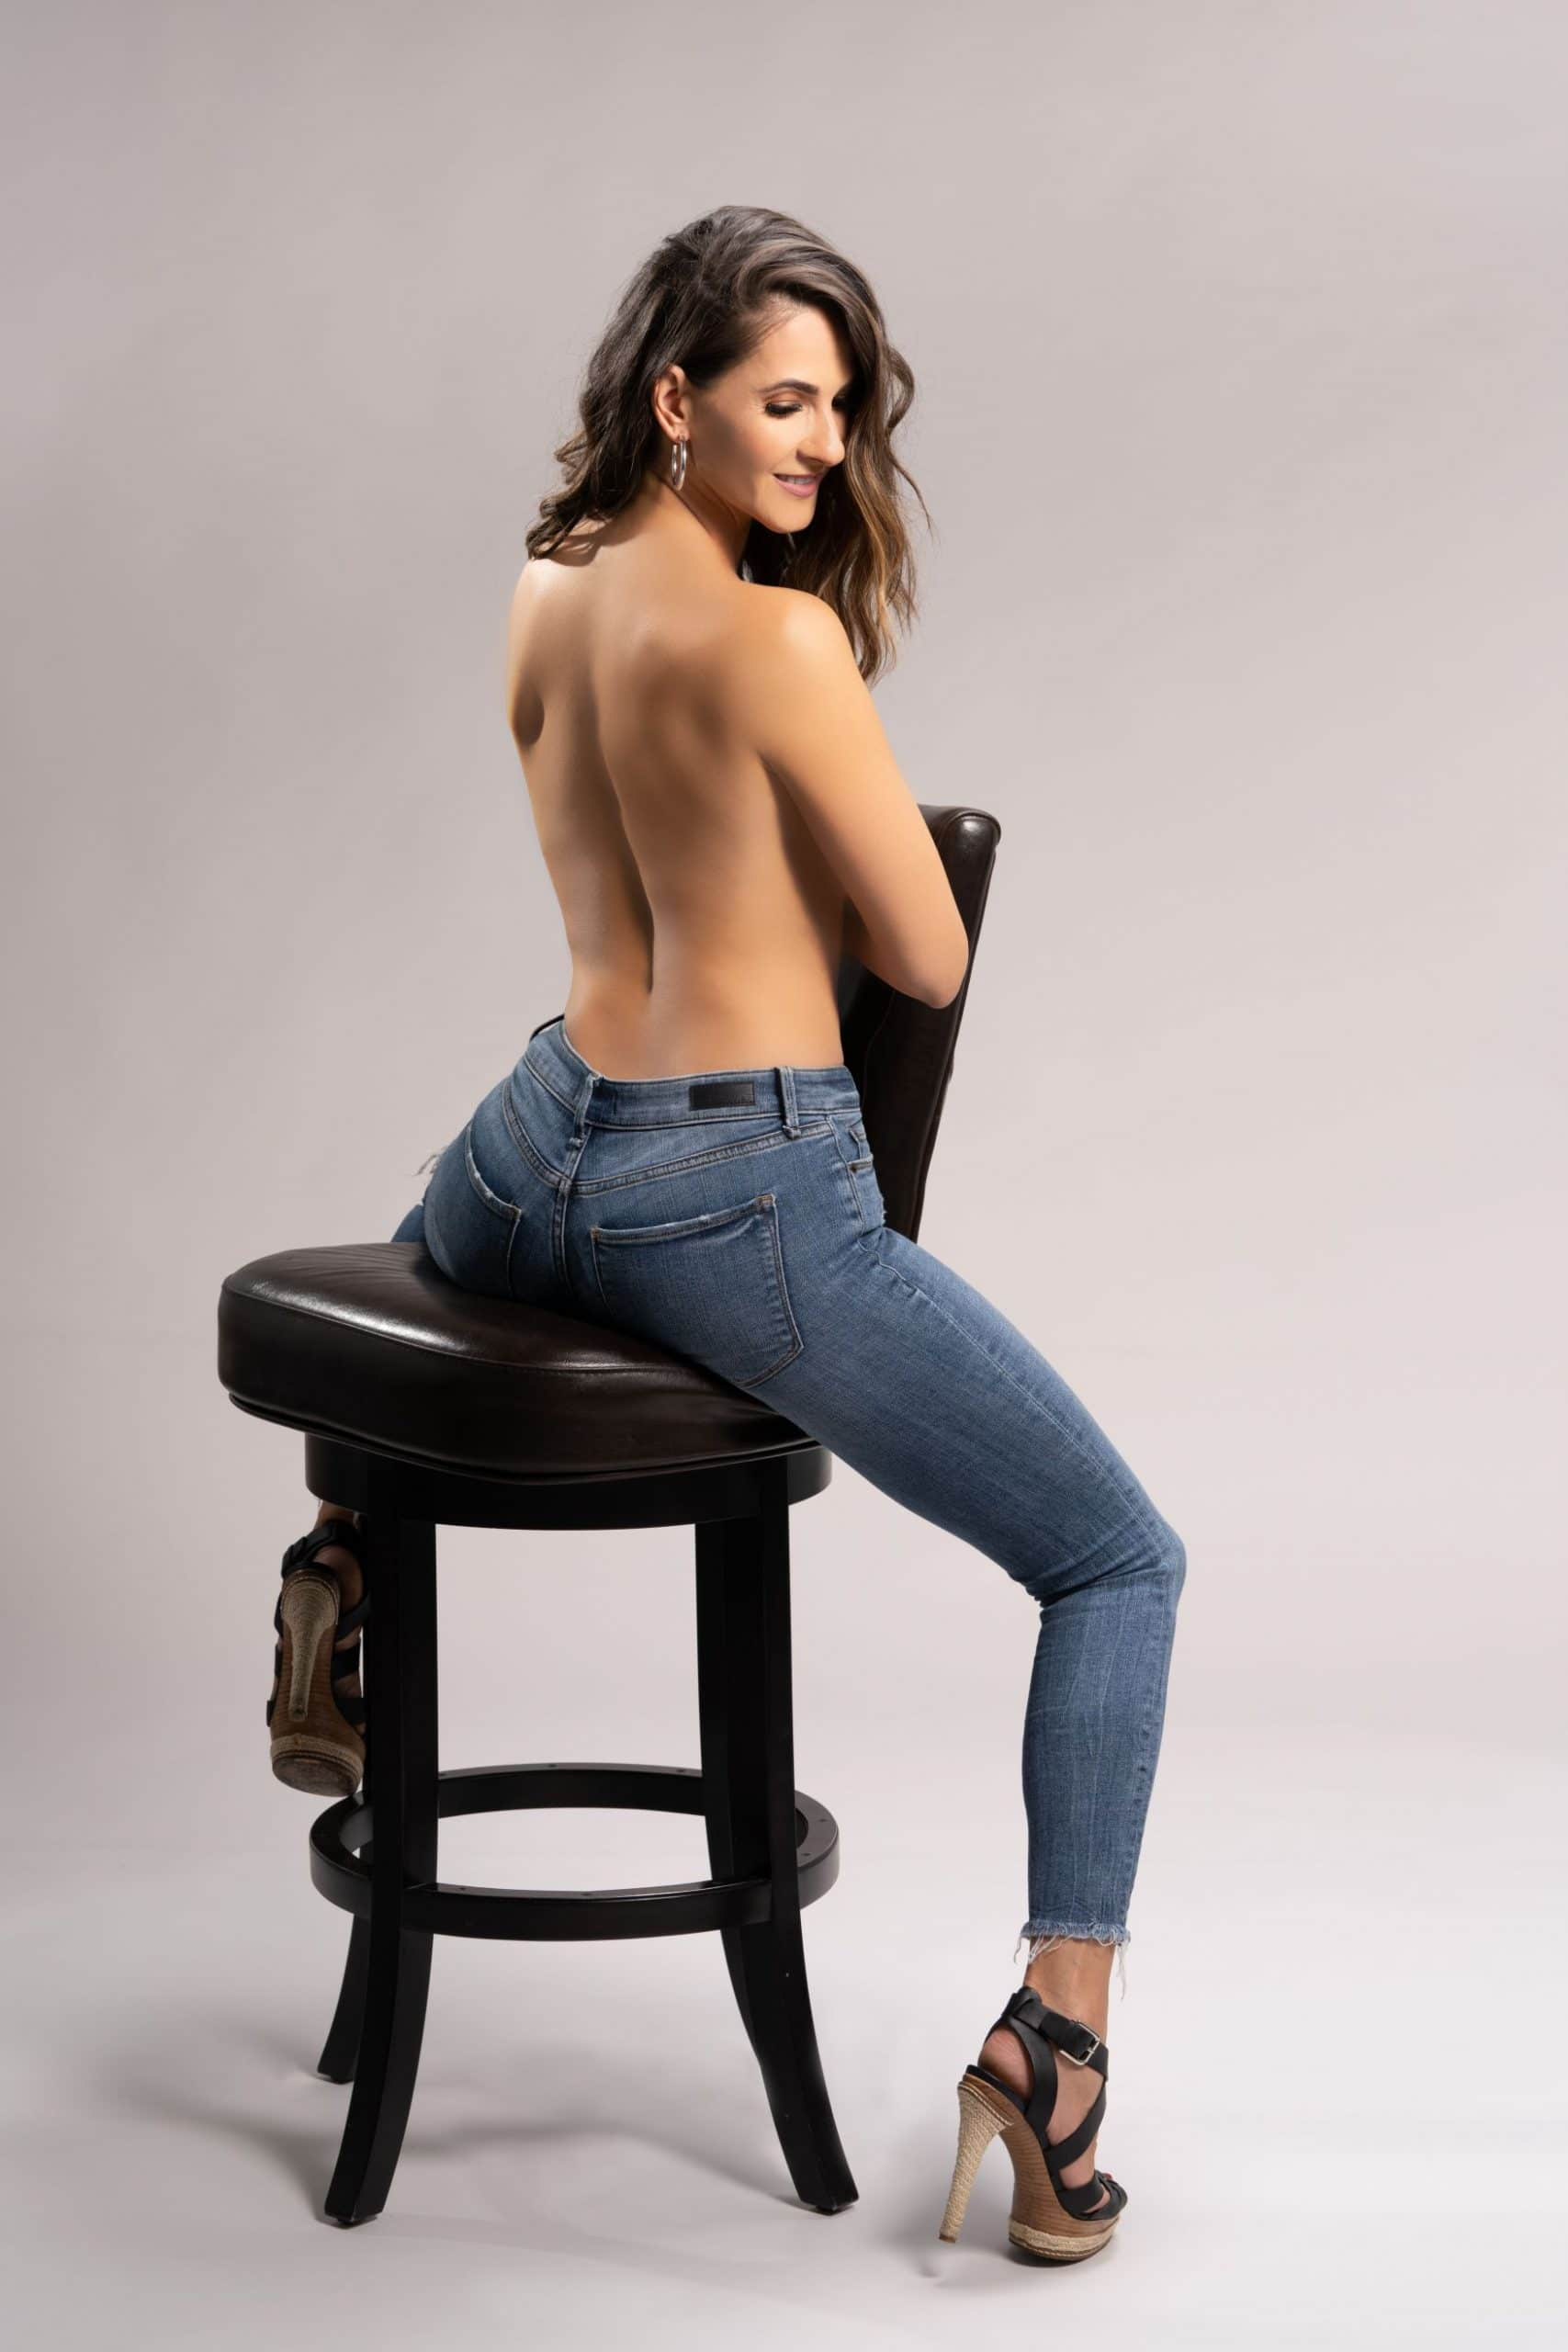 Strong woman photography of woman sitting across chair.